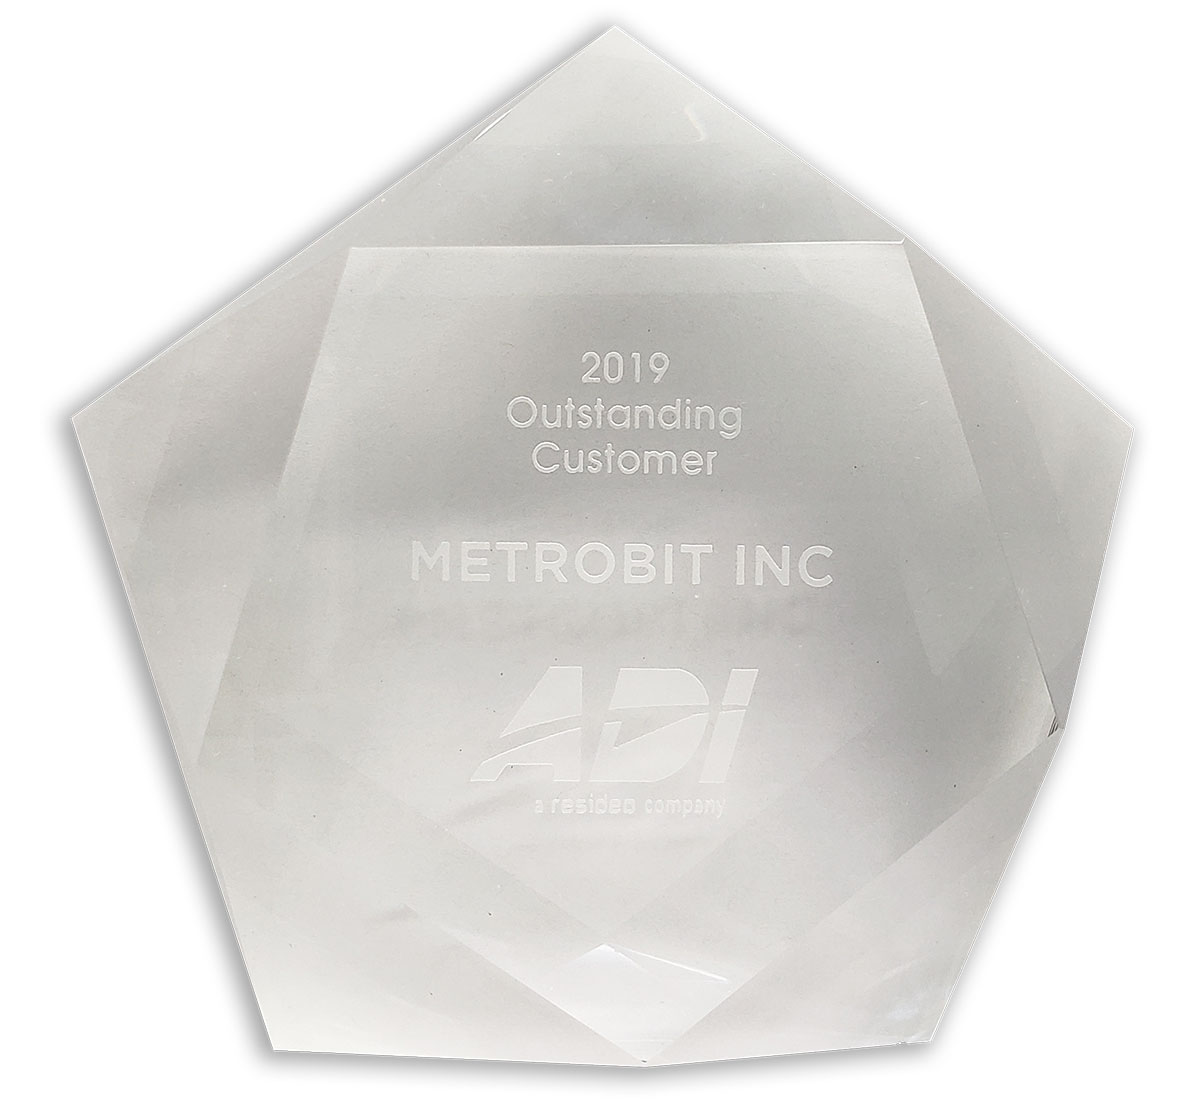 Metrobit was awarded as 2019 Outstanding Customer by ADI